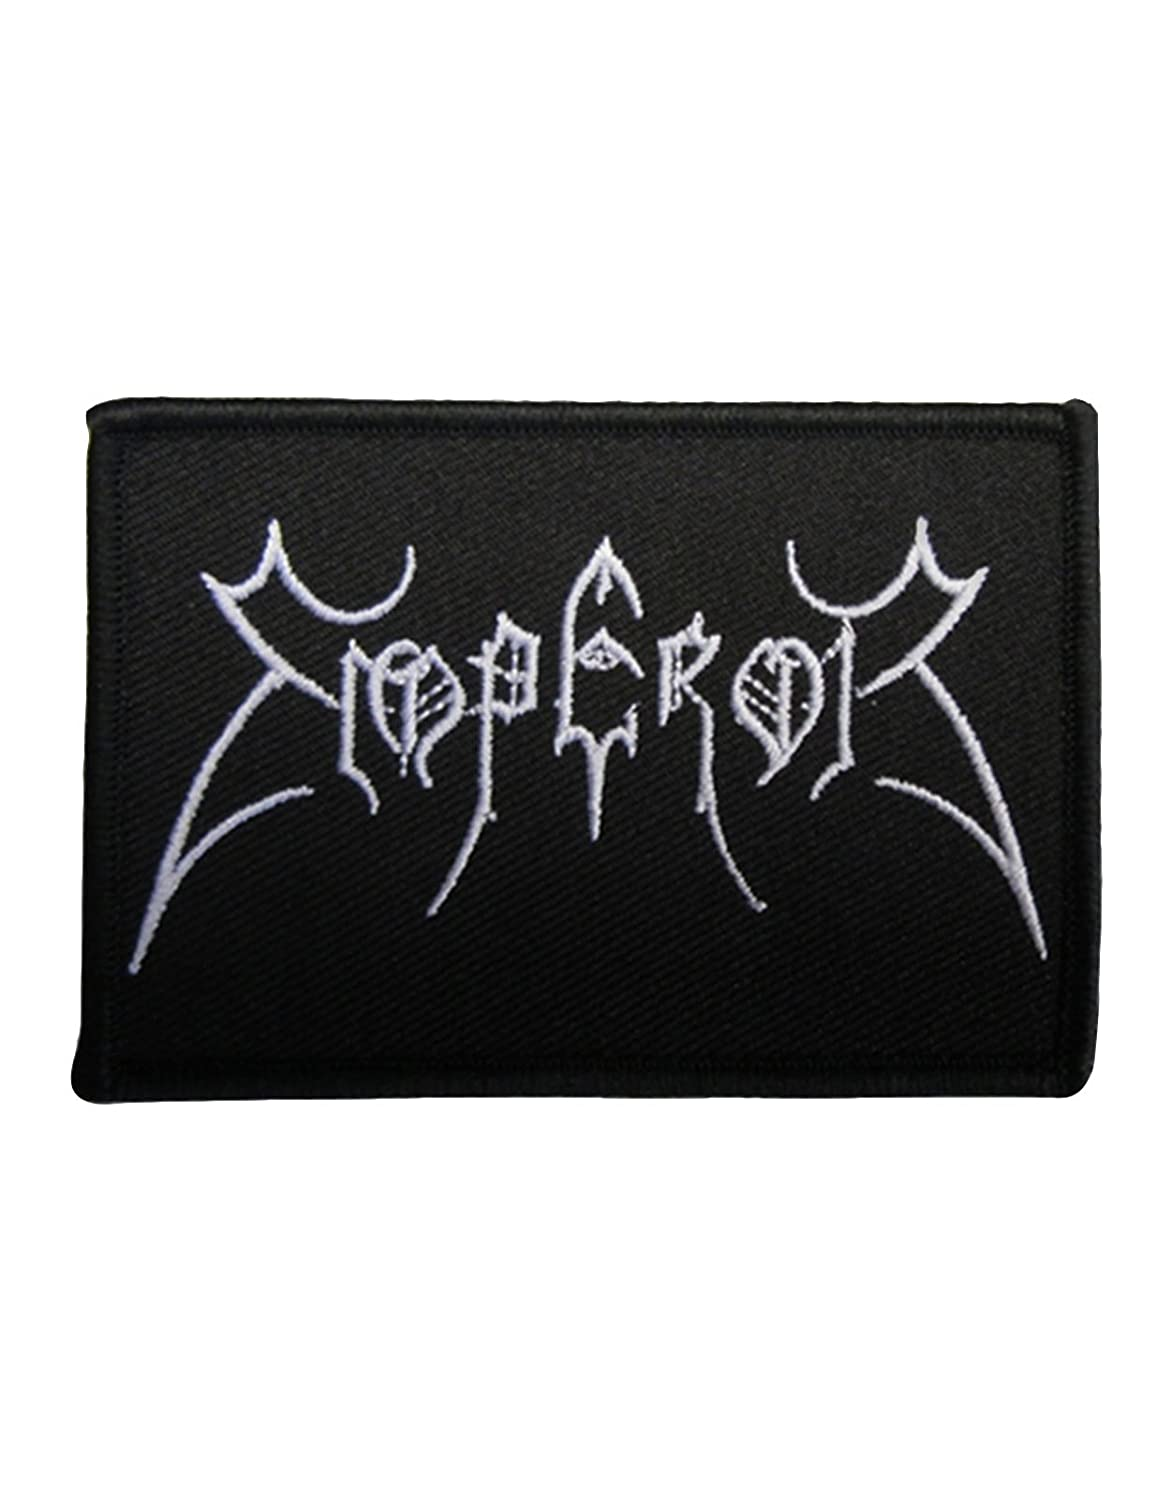 Emperor Patch Original Band Logo Official New Black Cotton Sew On 9cm x 6cm